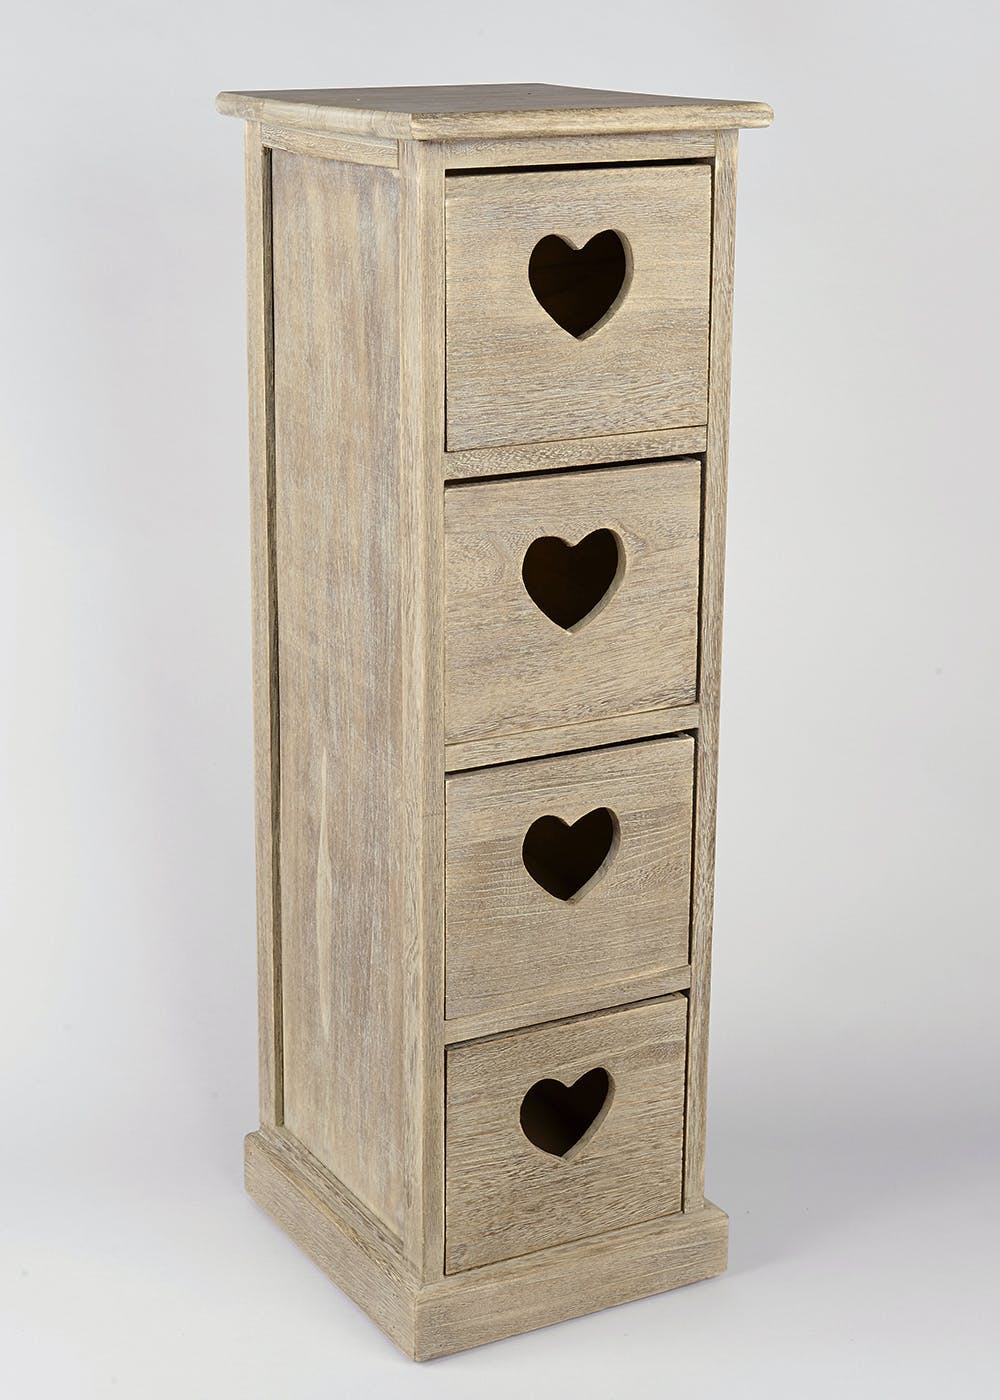 4 Drawer Wooden Storage Unit 80cm X 29cm X 25cm